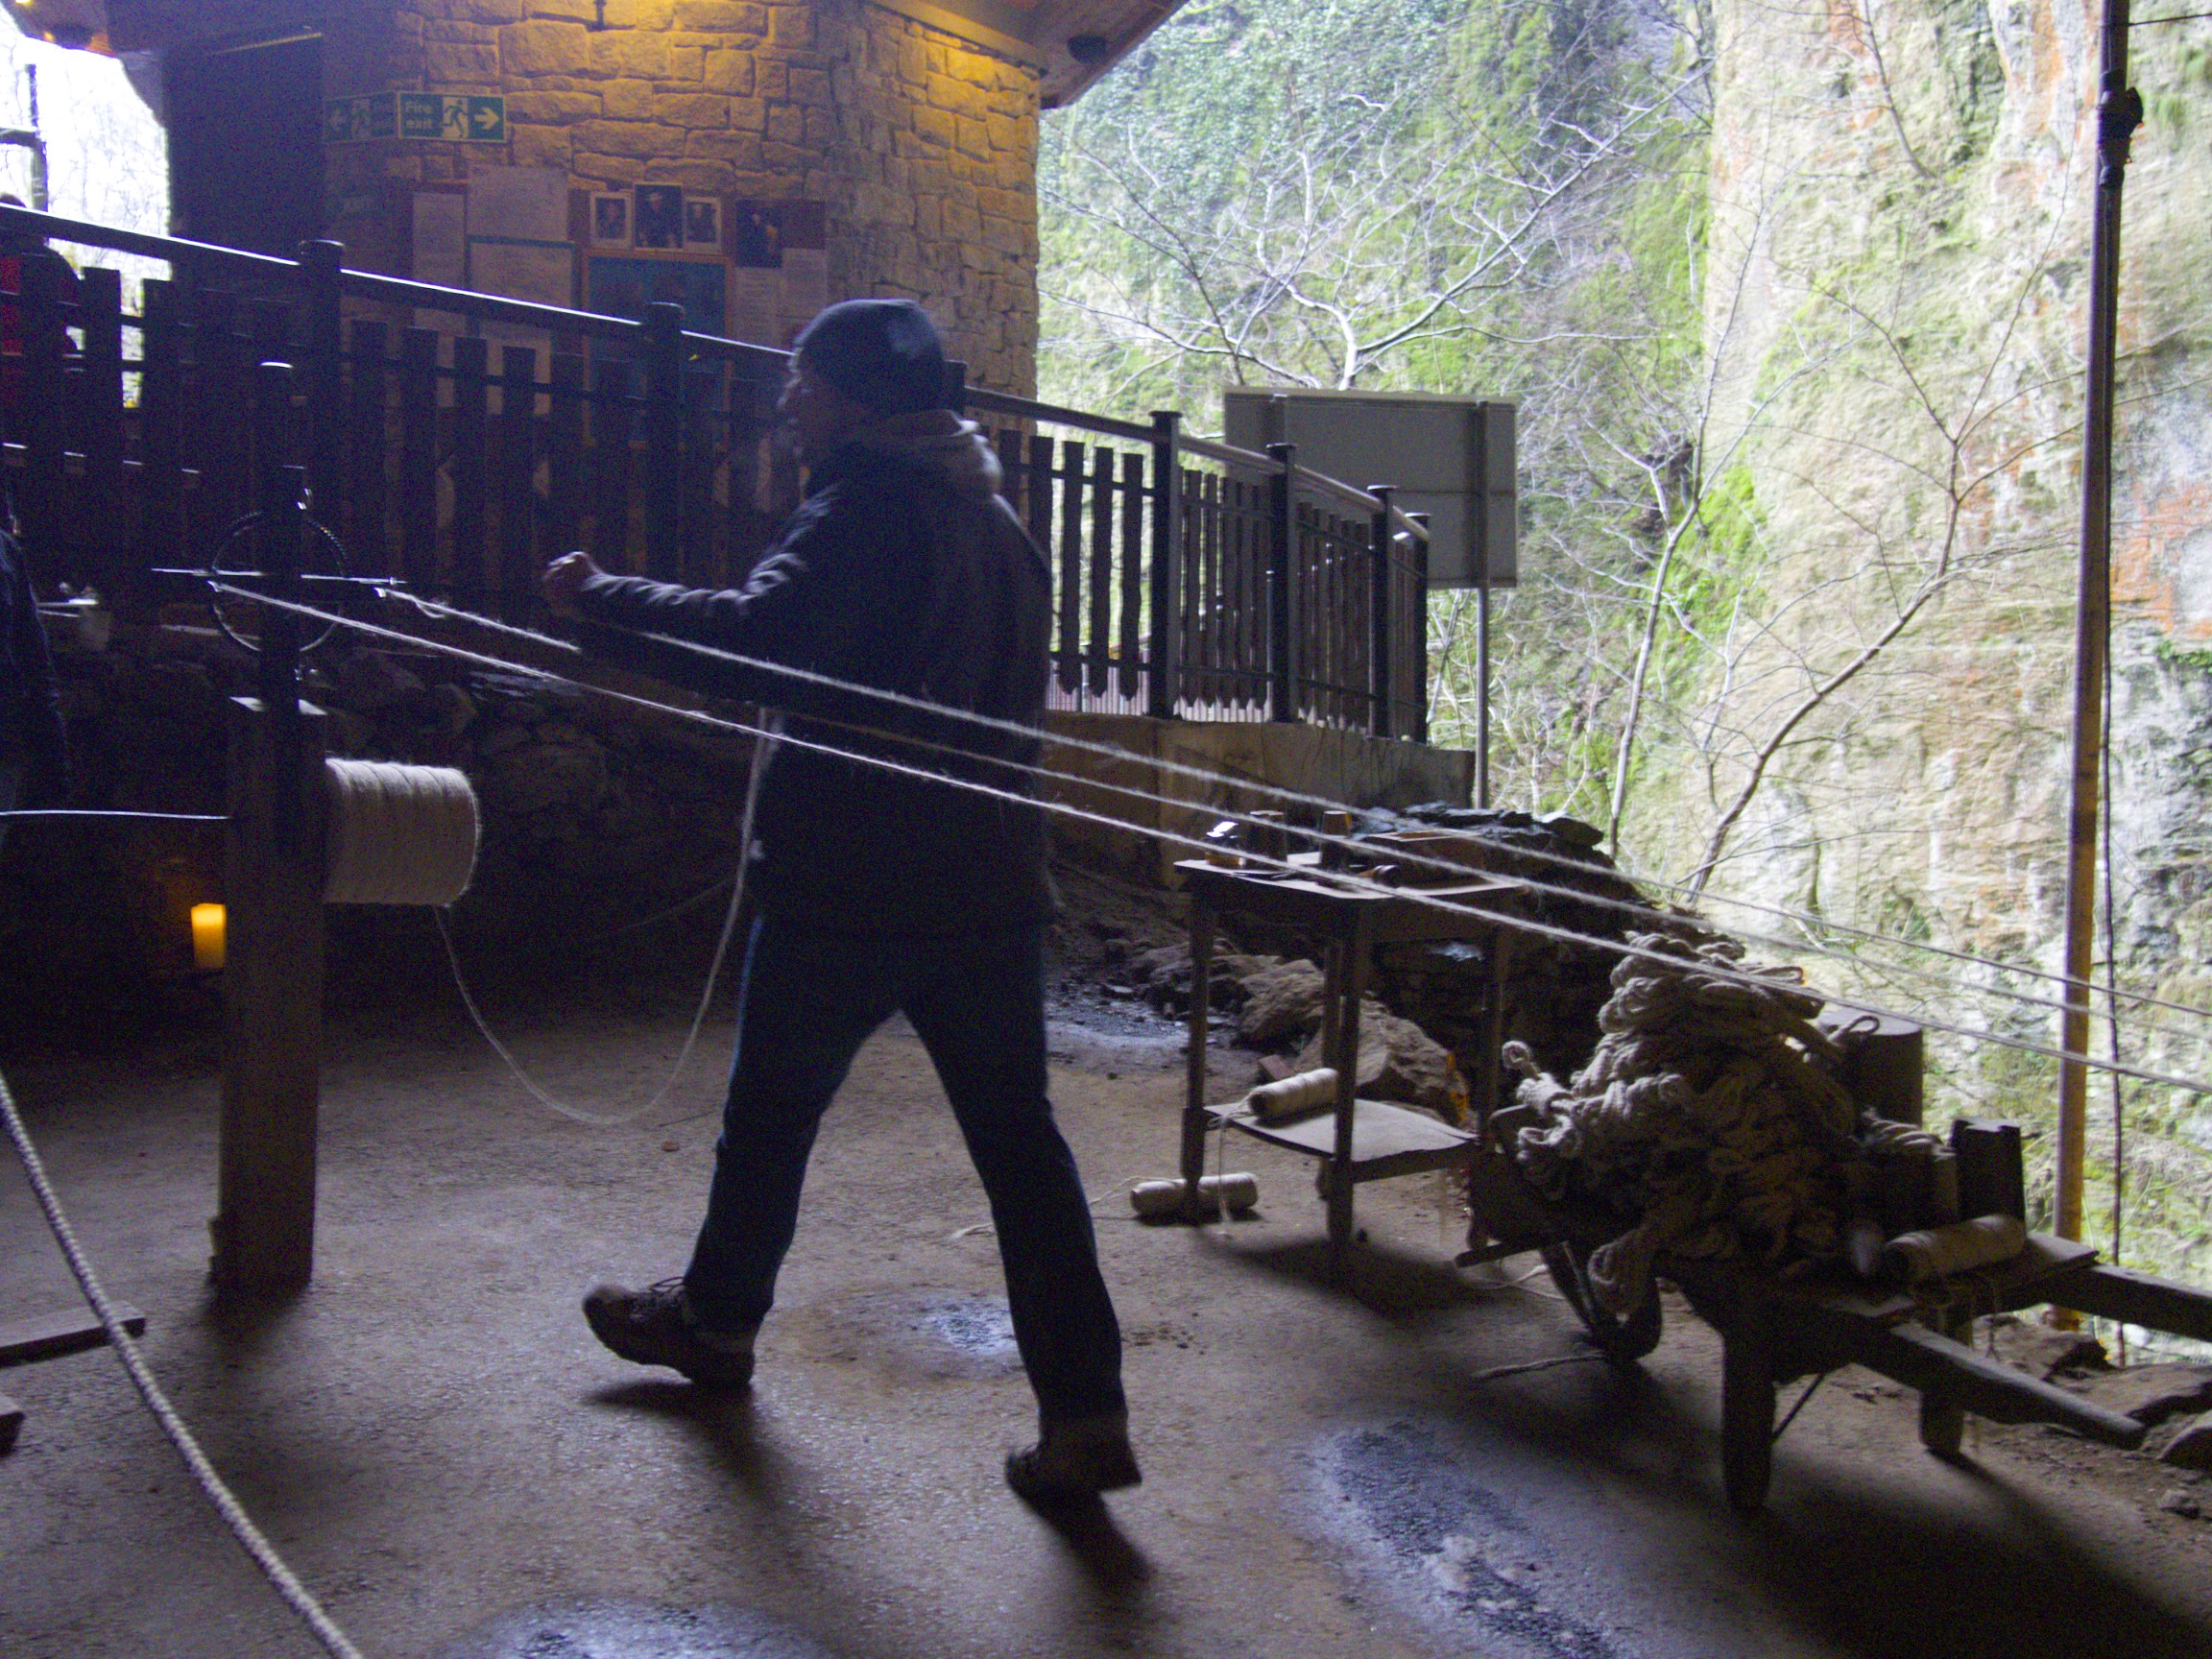 A demonstration of rope making, as part of the tour of the Devils Arse (Peak Cavern)